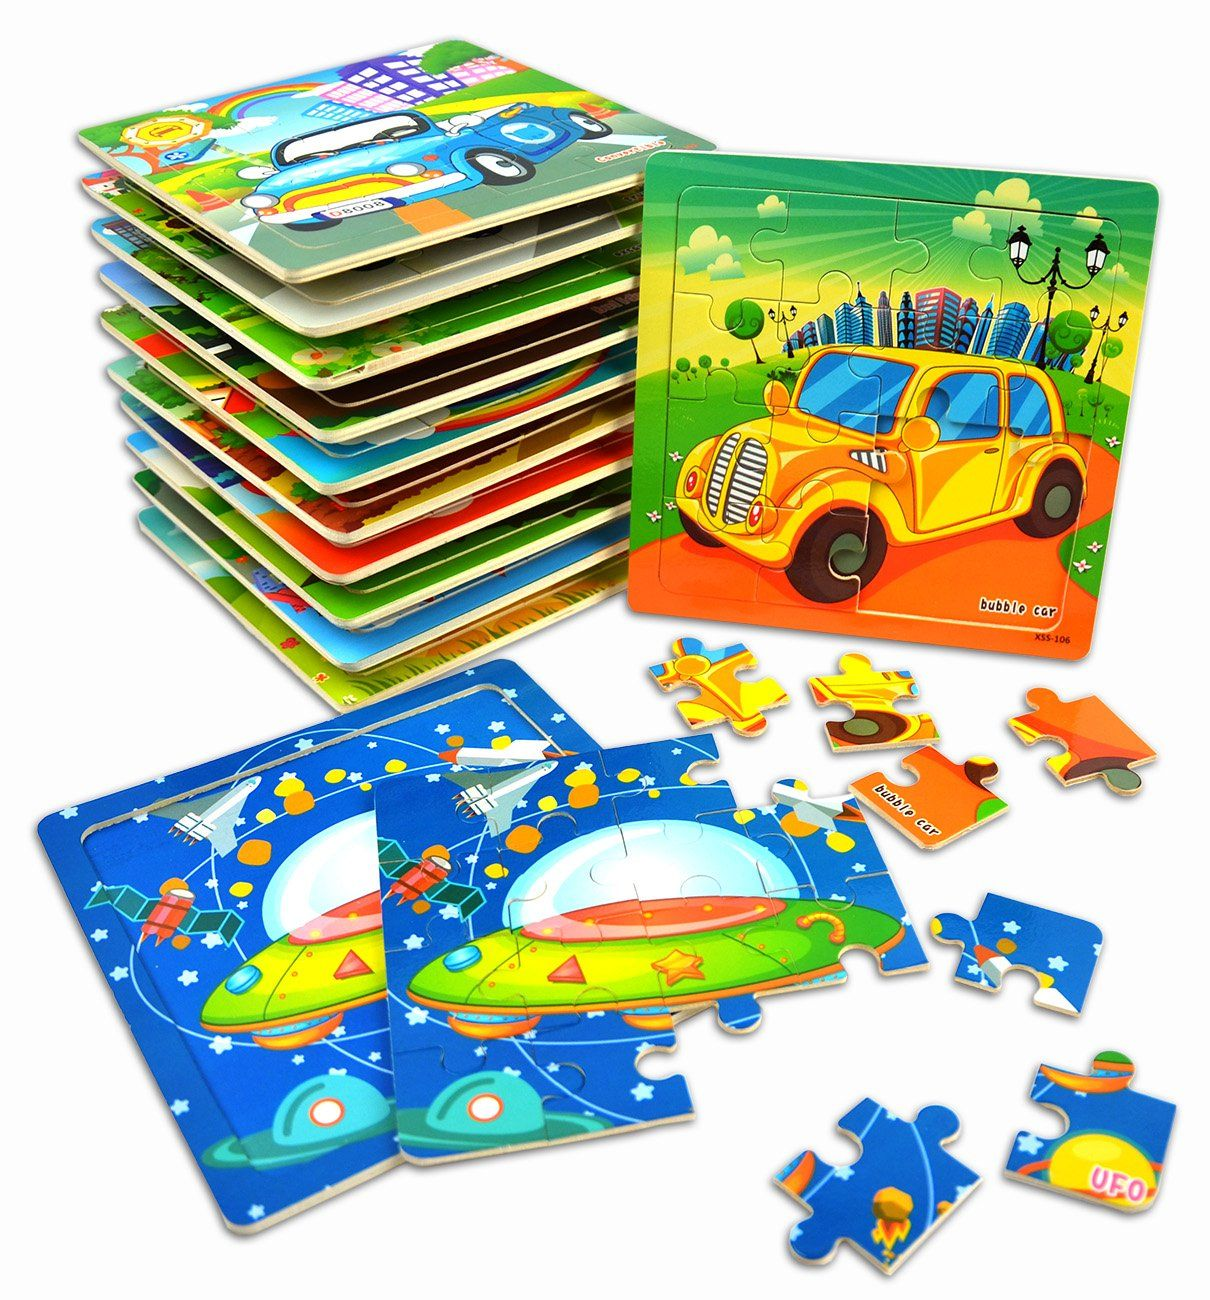 Golf Party Vileafy Kids Jigsaw Puzzles Party Favors Toys For Boys And Girls Wooden Puzzles 12pack With Jigsaw Puzzles For Kids Kids Jigsaw Boy Party Favors